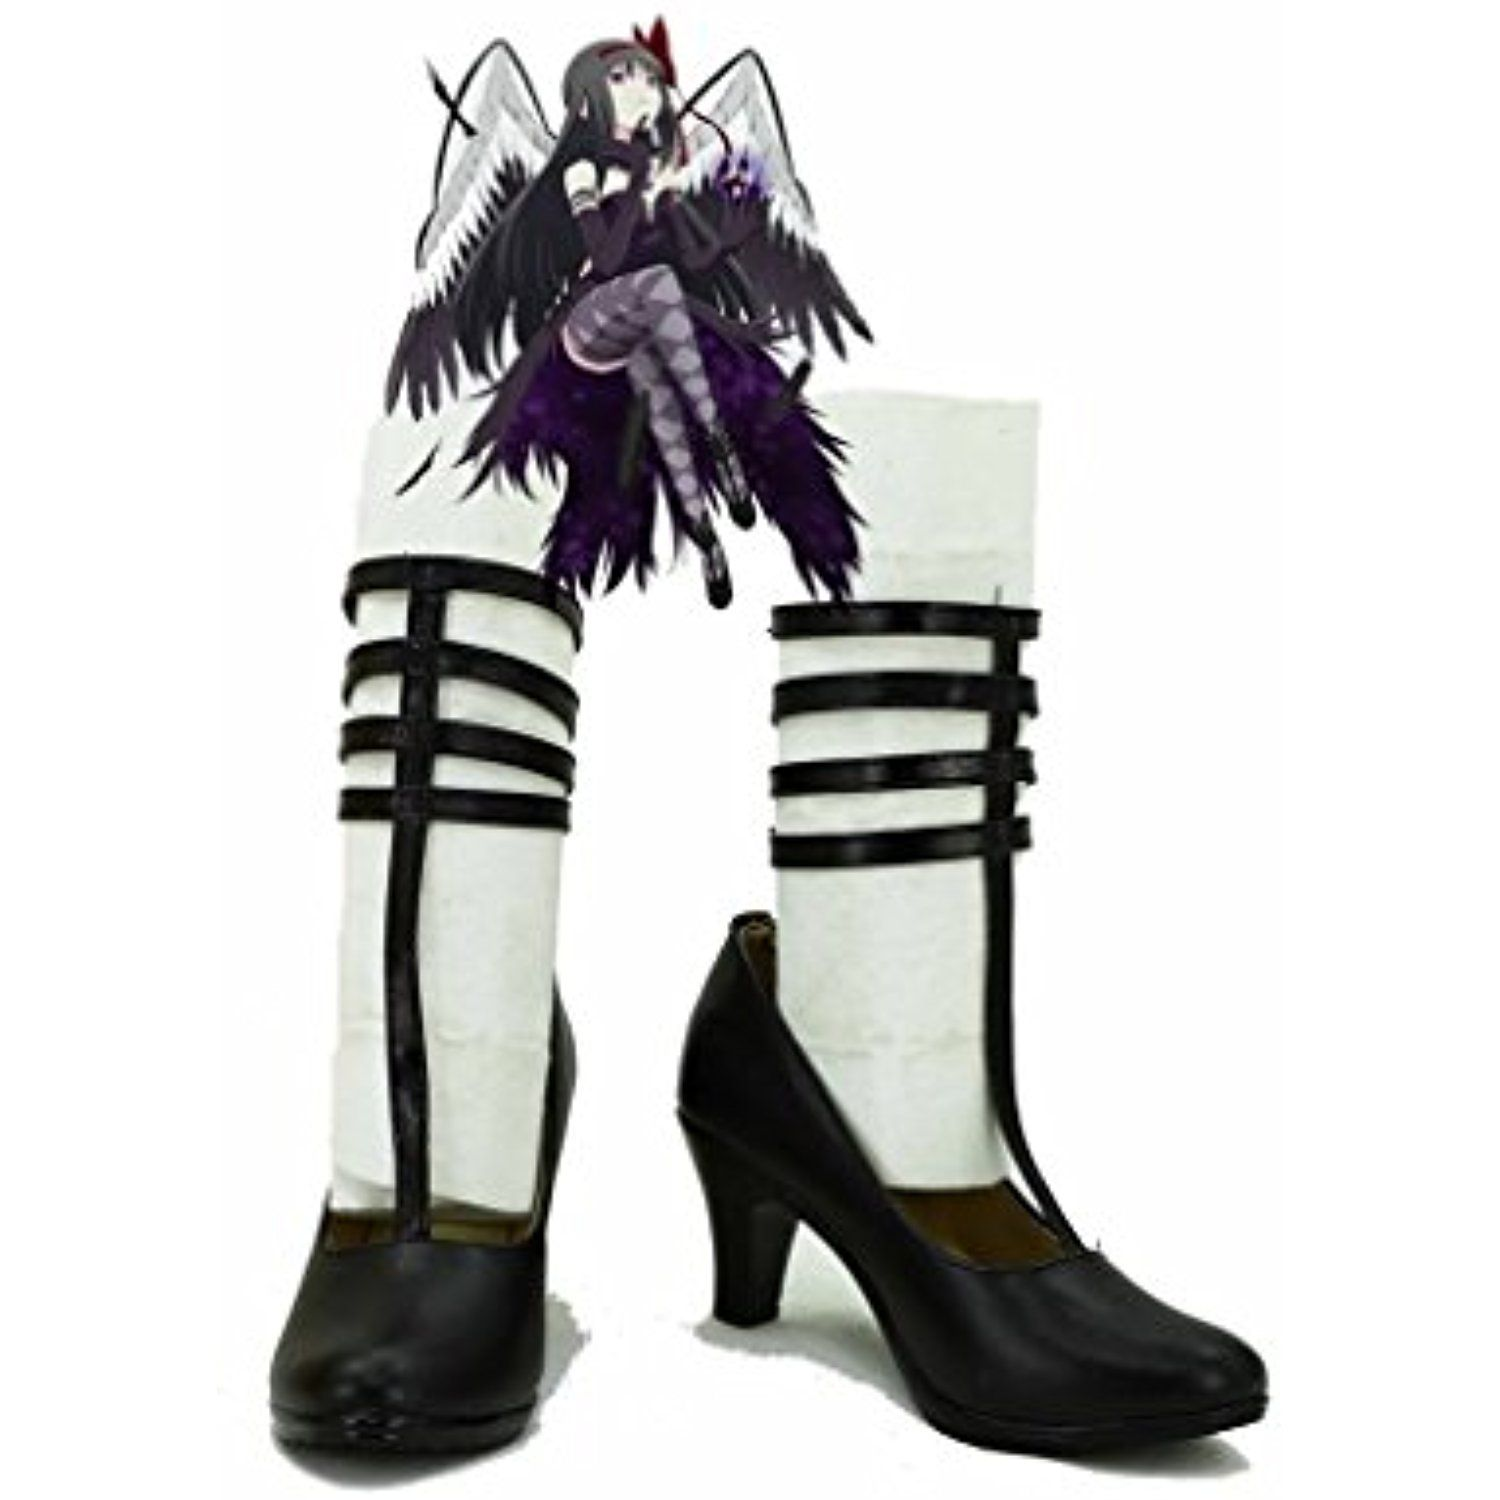 Puella Magi Madoka Magica Homura Akemi Devil-Version Shoes Boots Custom Made Black